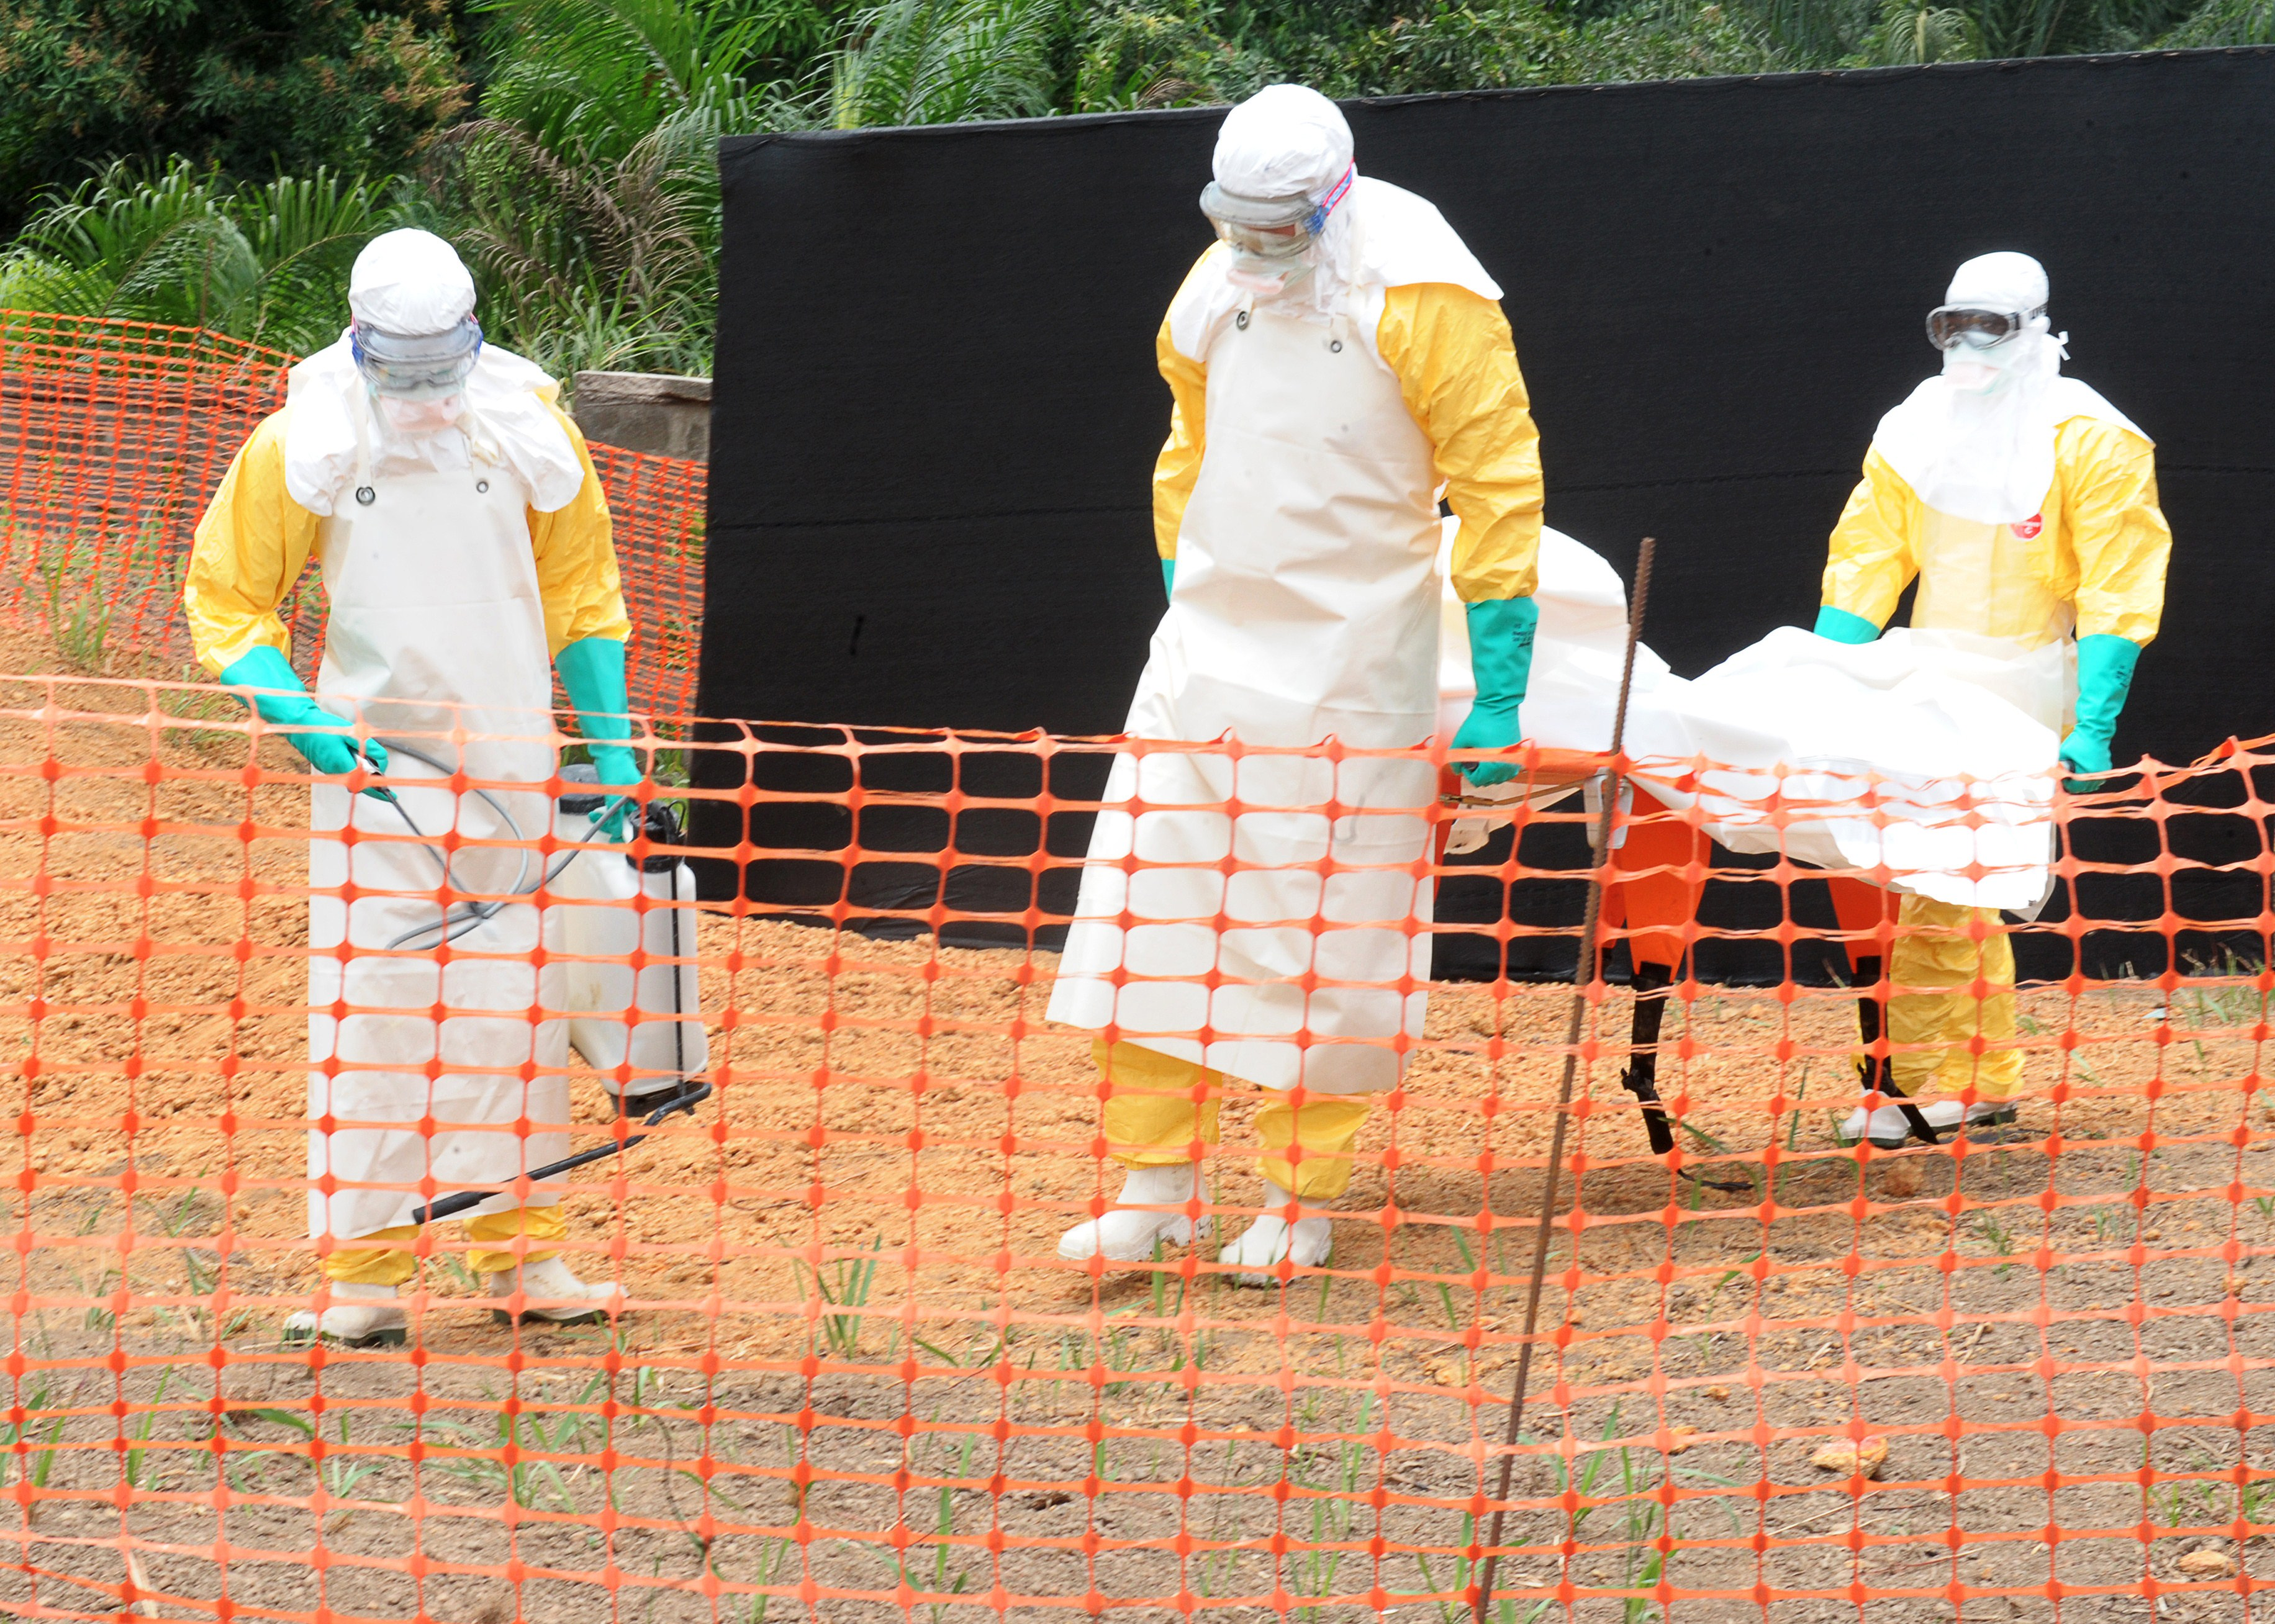 Sierra Leone Records 121 Ebola Deaths, 81 New Cases in Single Day